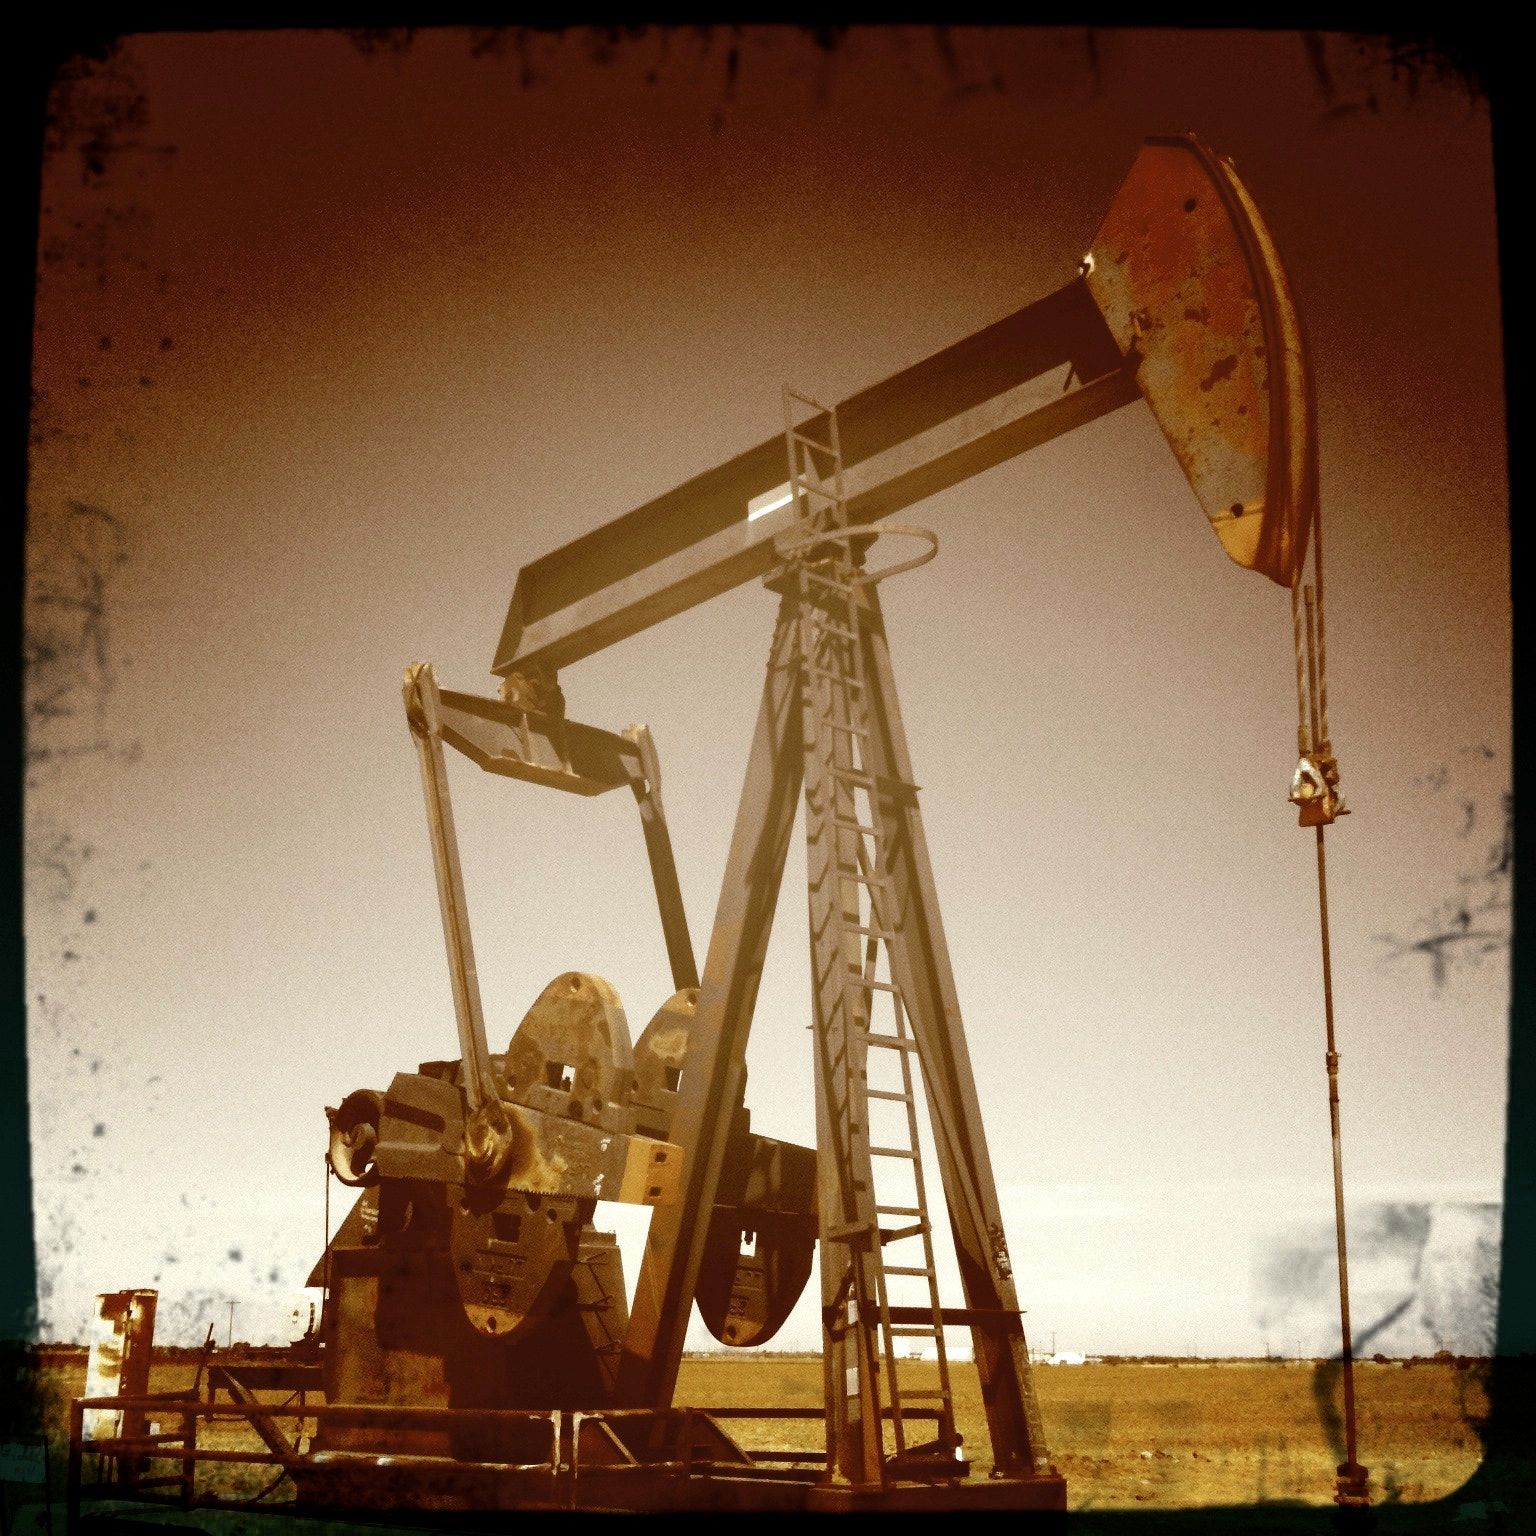 Photograph West Texas Oil Field Rig Pump by David Kozlowski on 500px